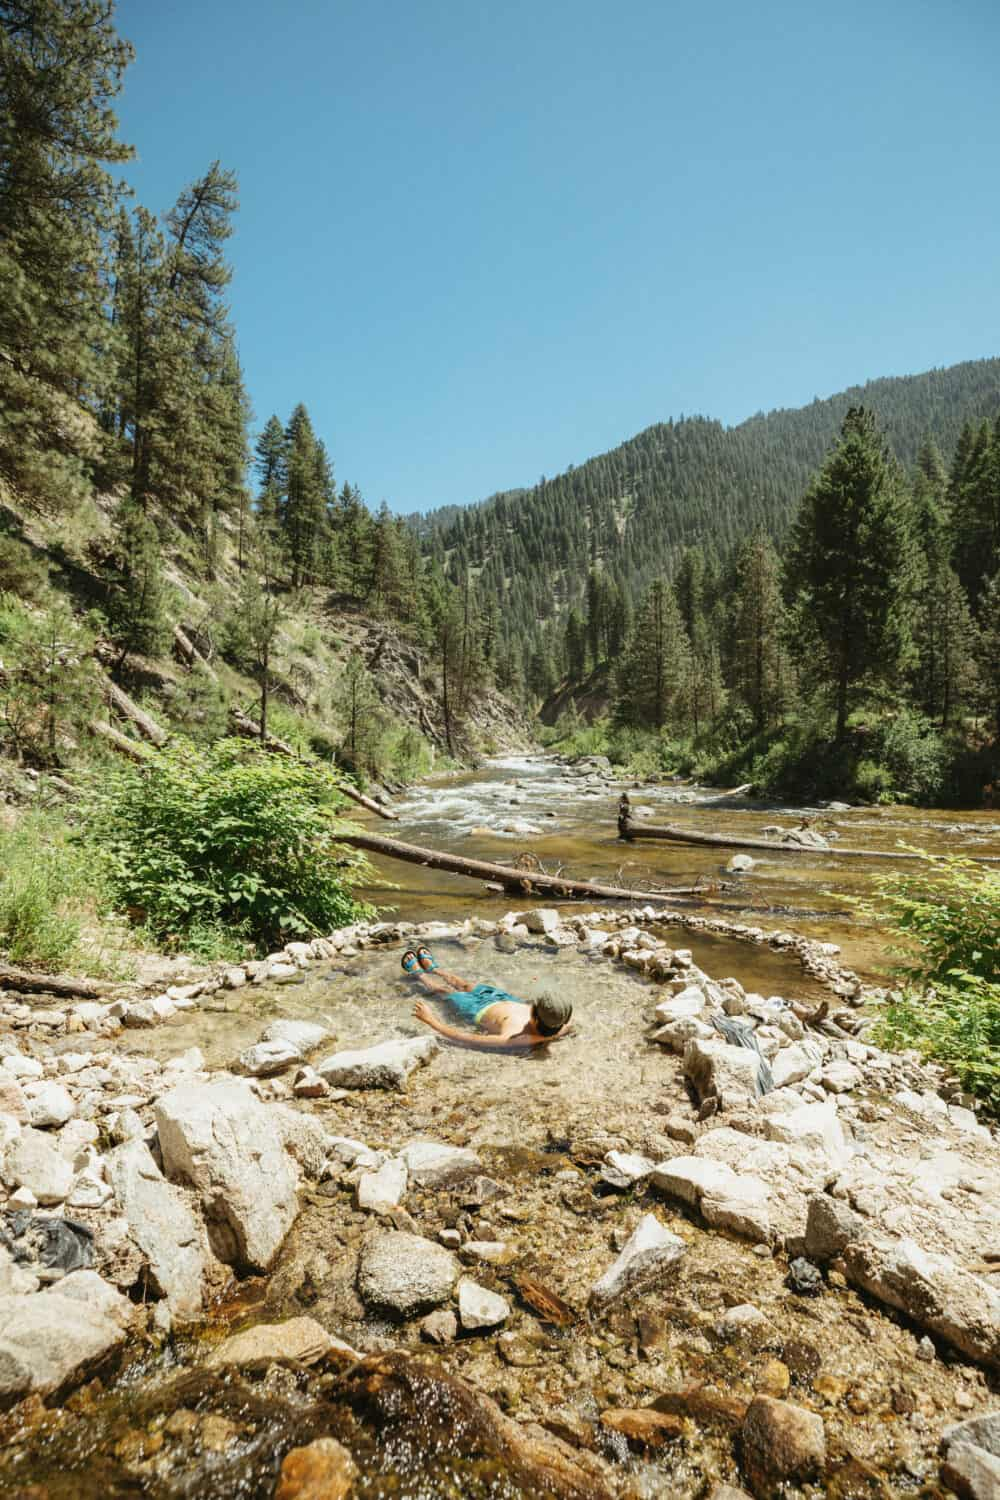 Berty Mandagie soaking in tiered pools at Rocky Canyon Hot Springs